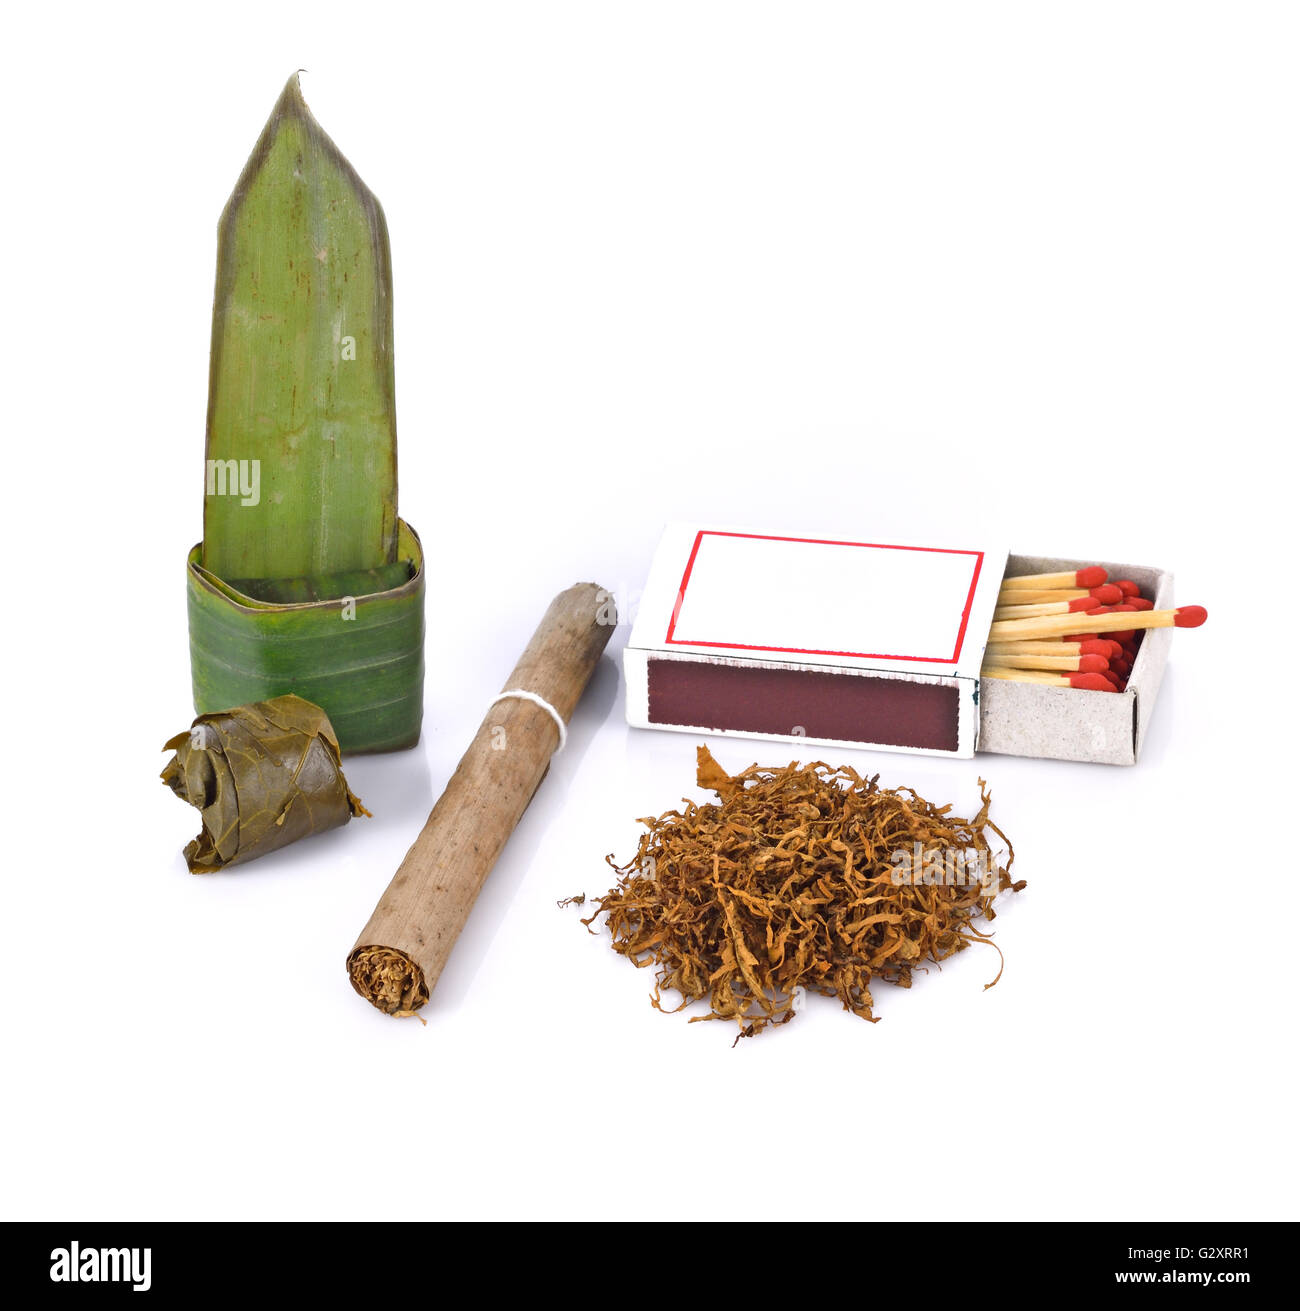 Tobacco , cigarette and food wrapped in leaves on white background - Stock Image